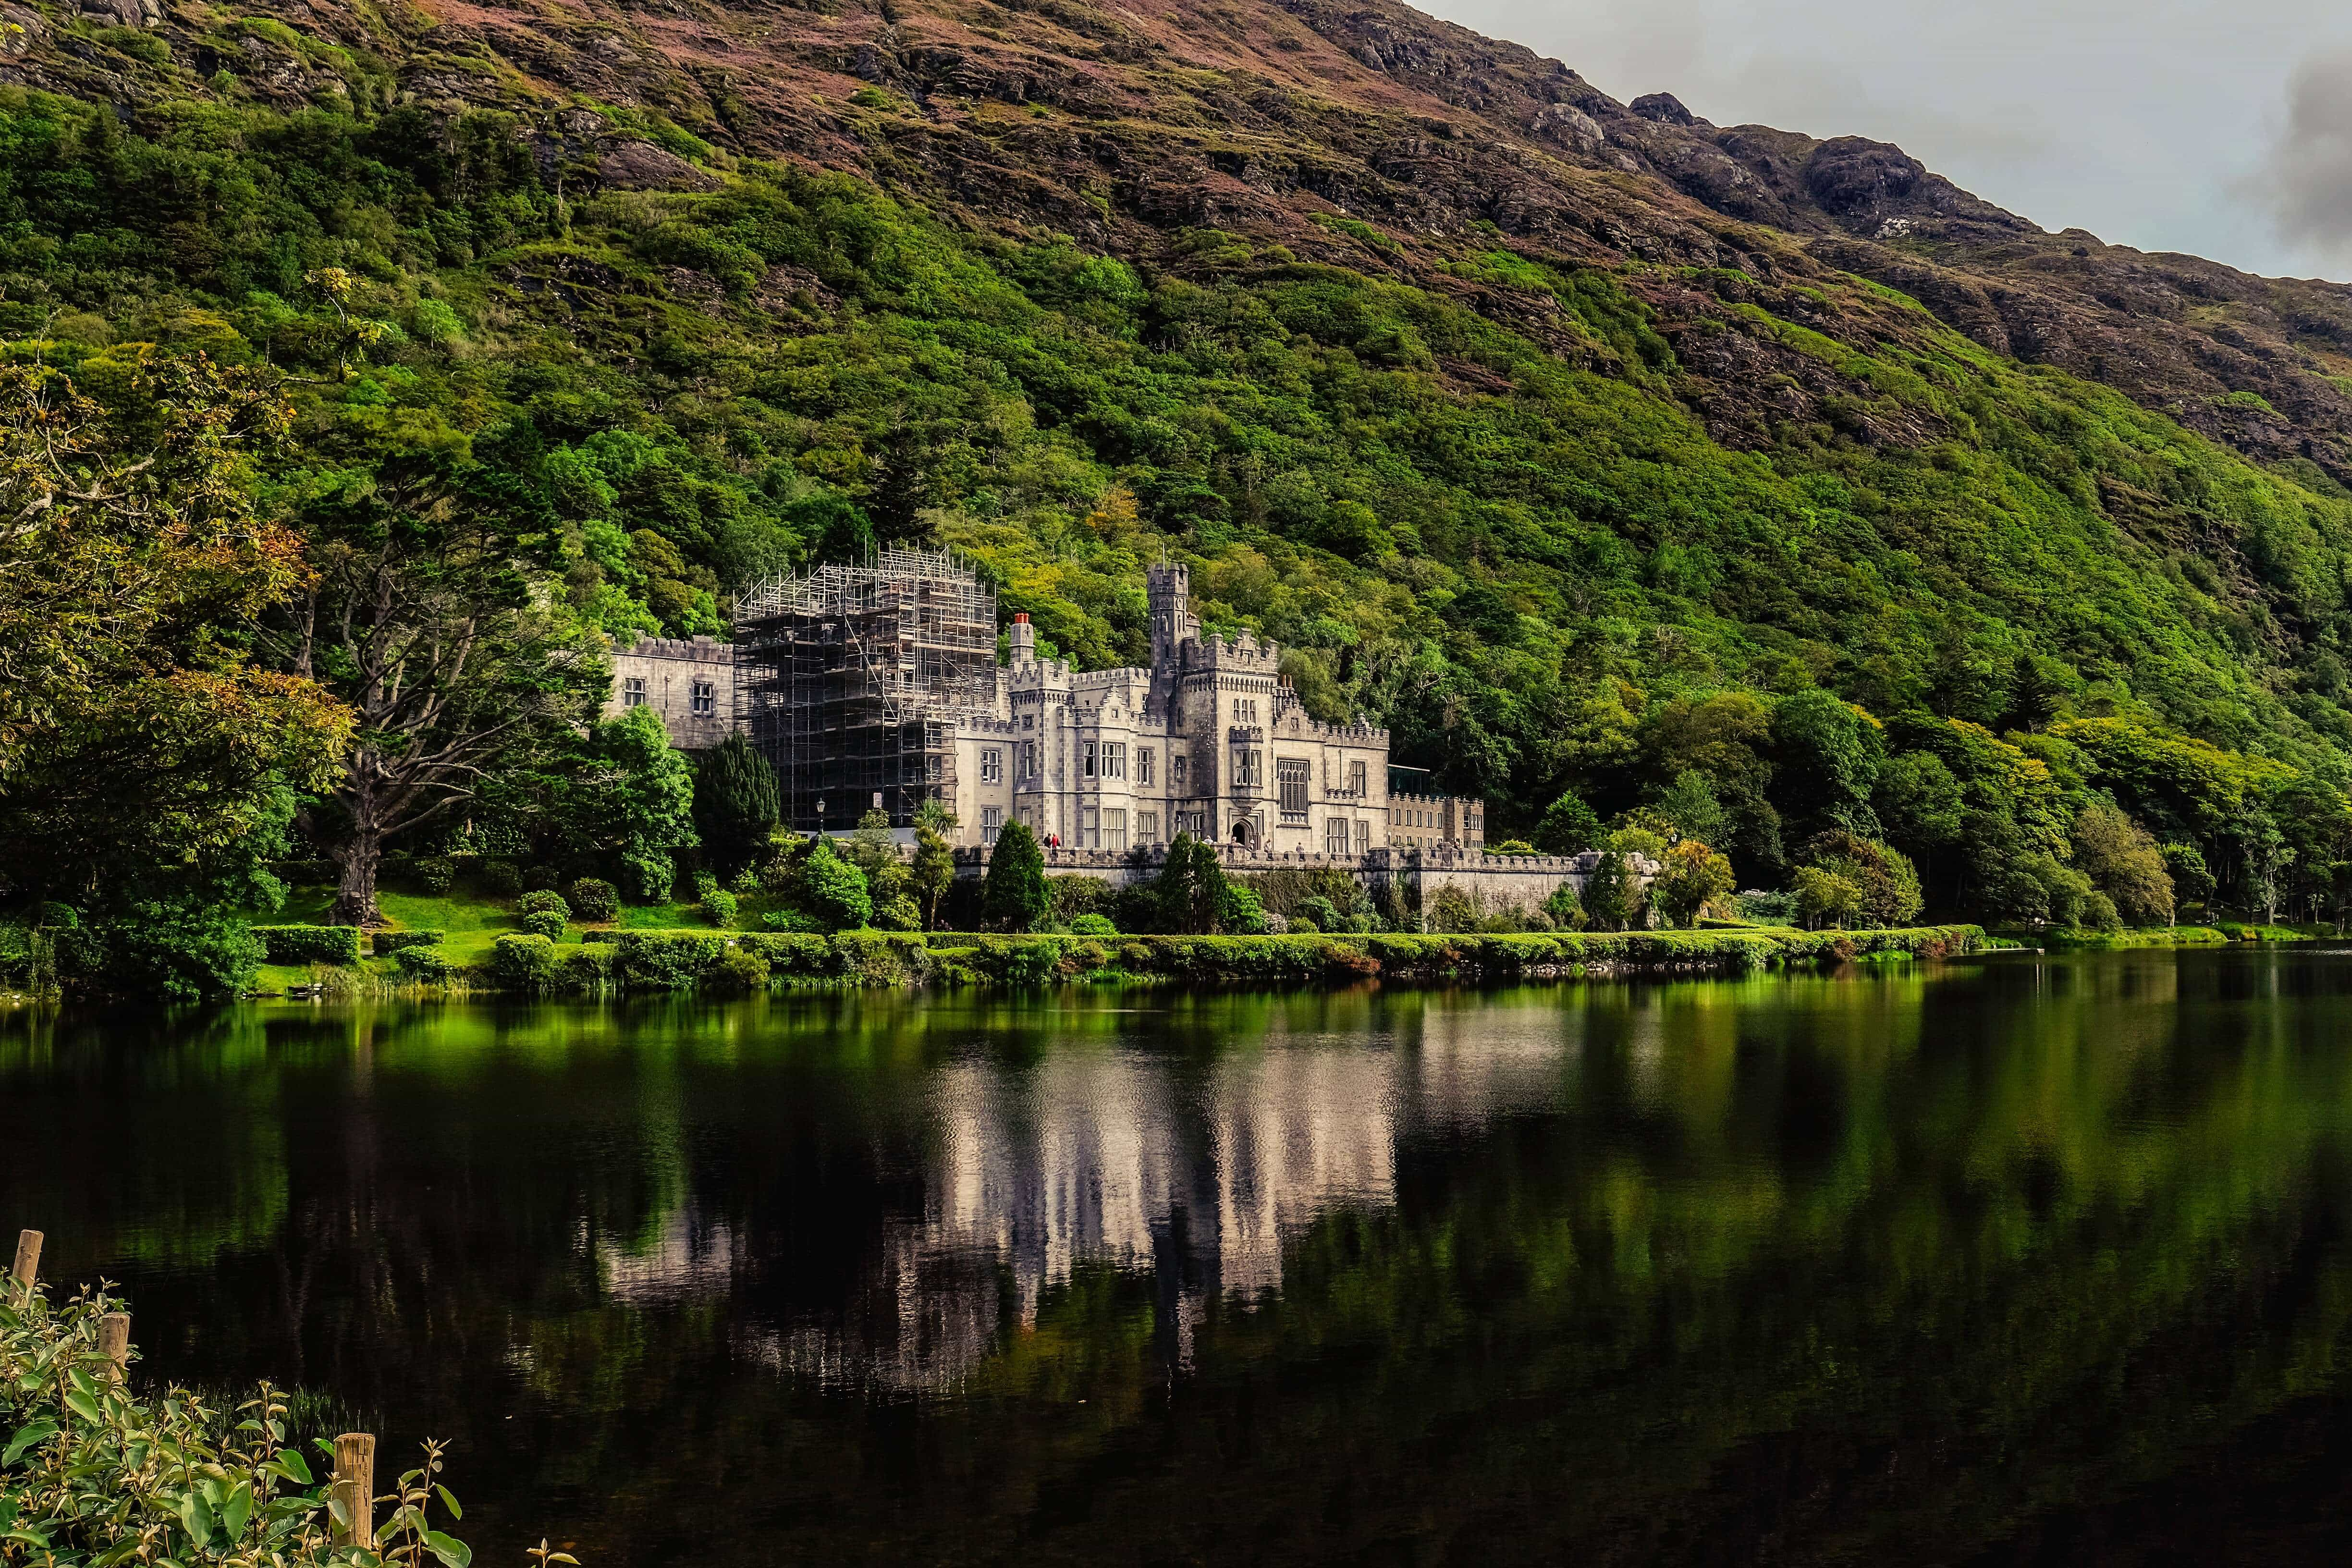 Kylemore Abbey – Photo by RUBEN XOVE on Unsplash